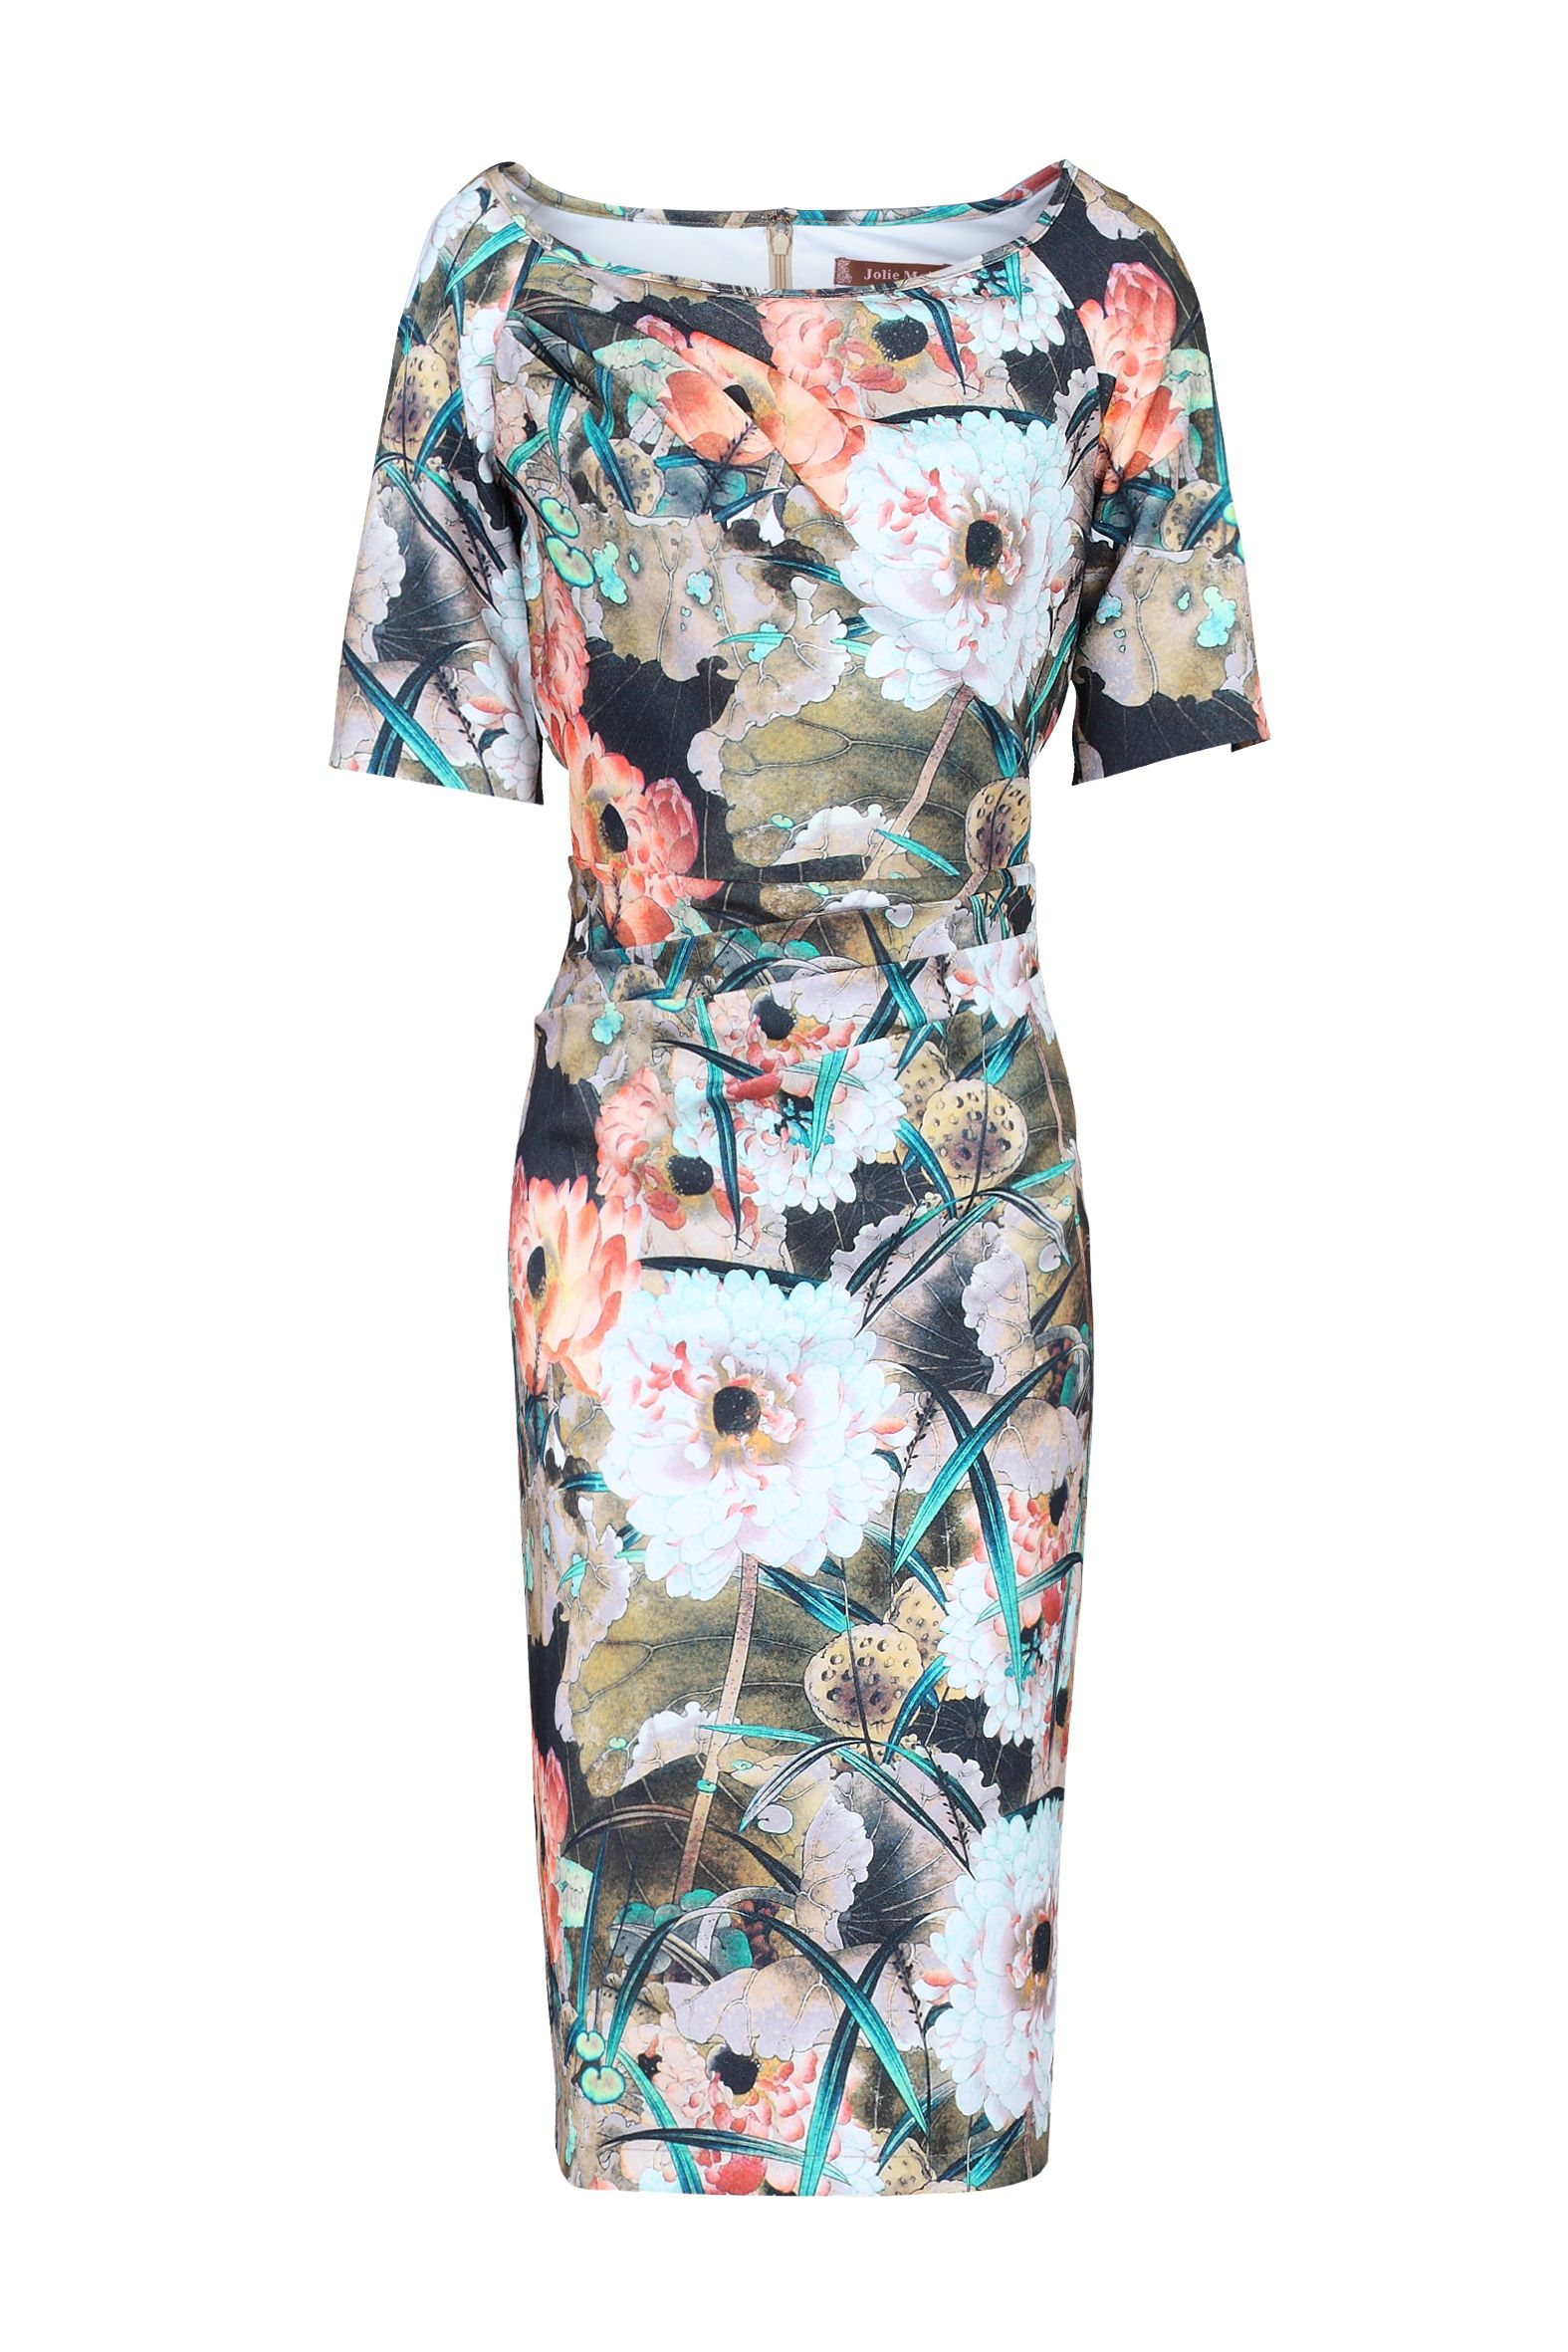 Jolie Moi Print Half Sleeve Shift Dress, Multi-Coloured